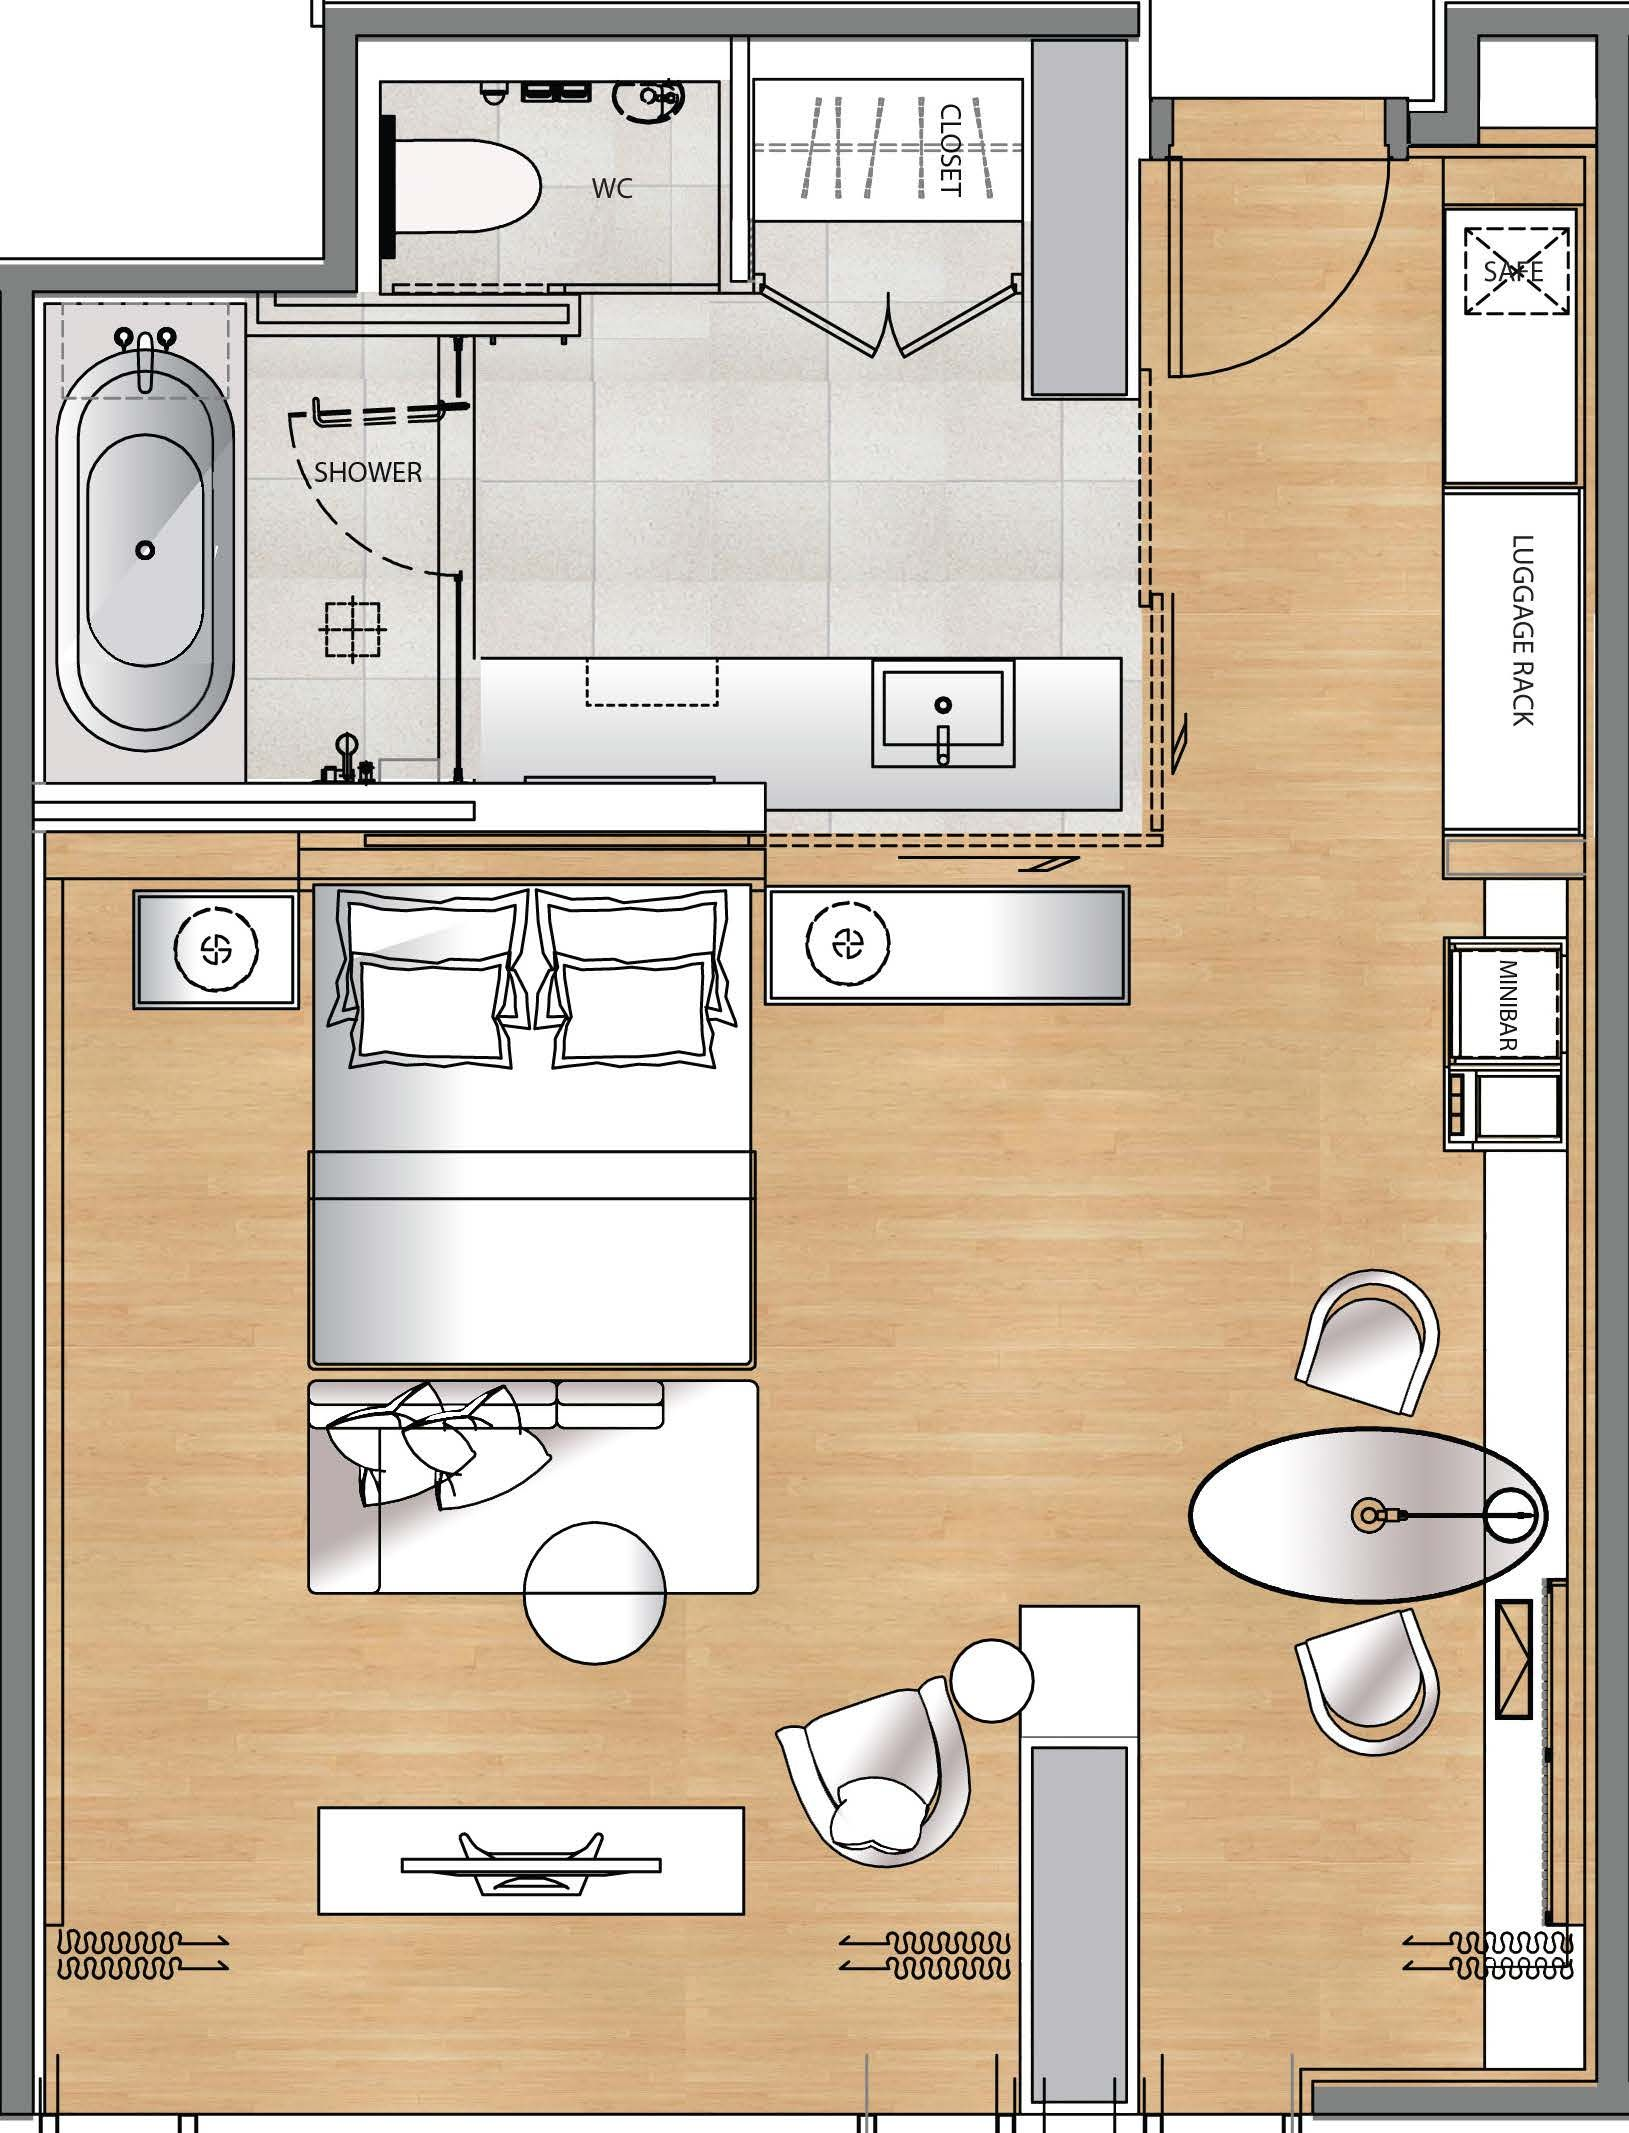 hotel gym floor plan google search hotel rooms